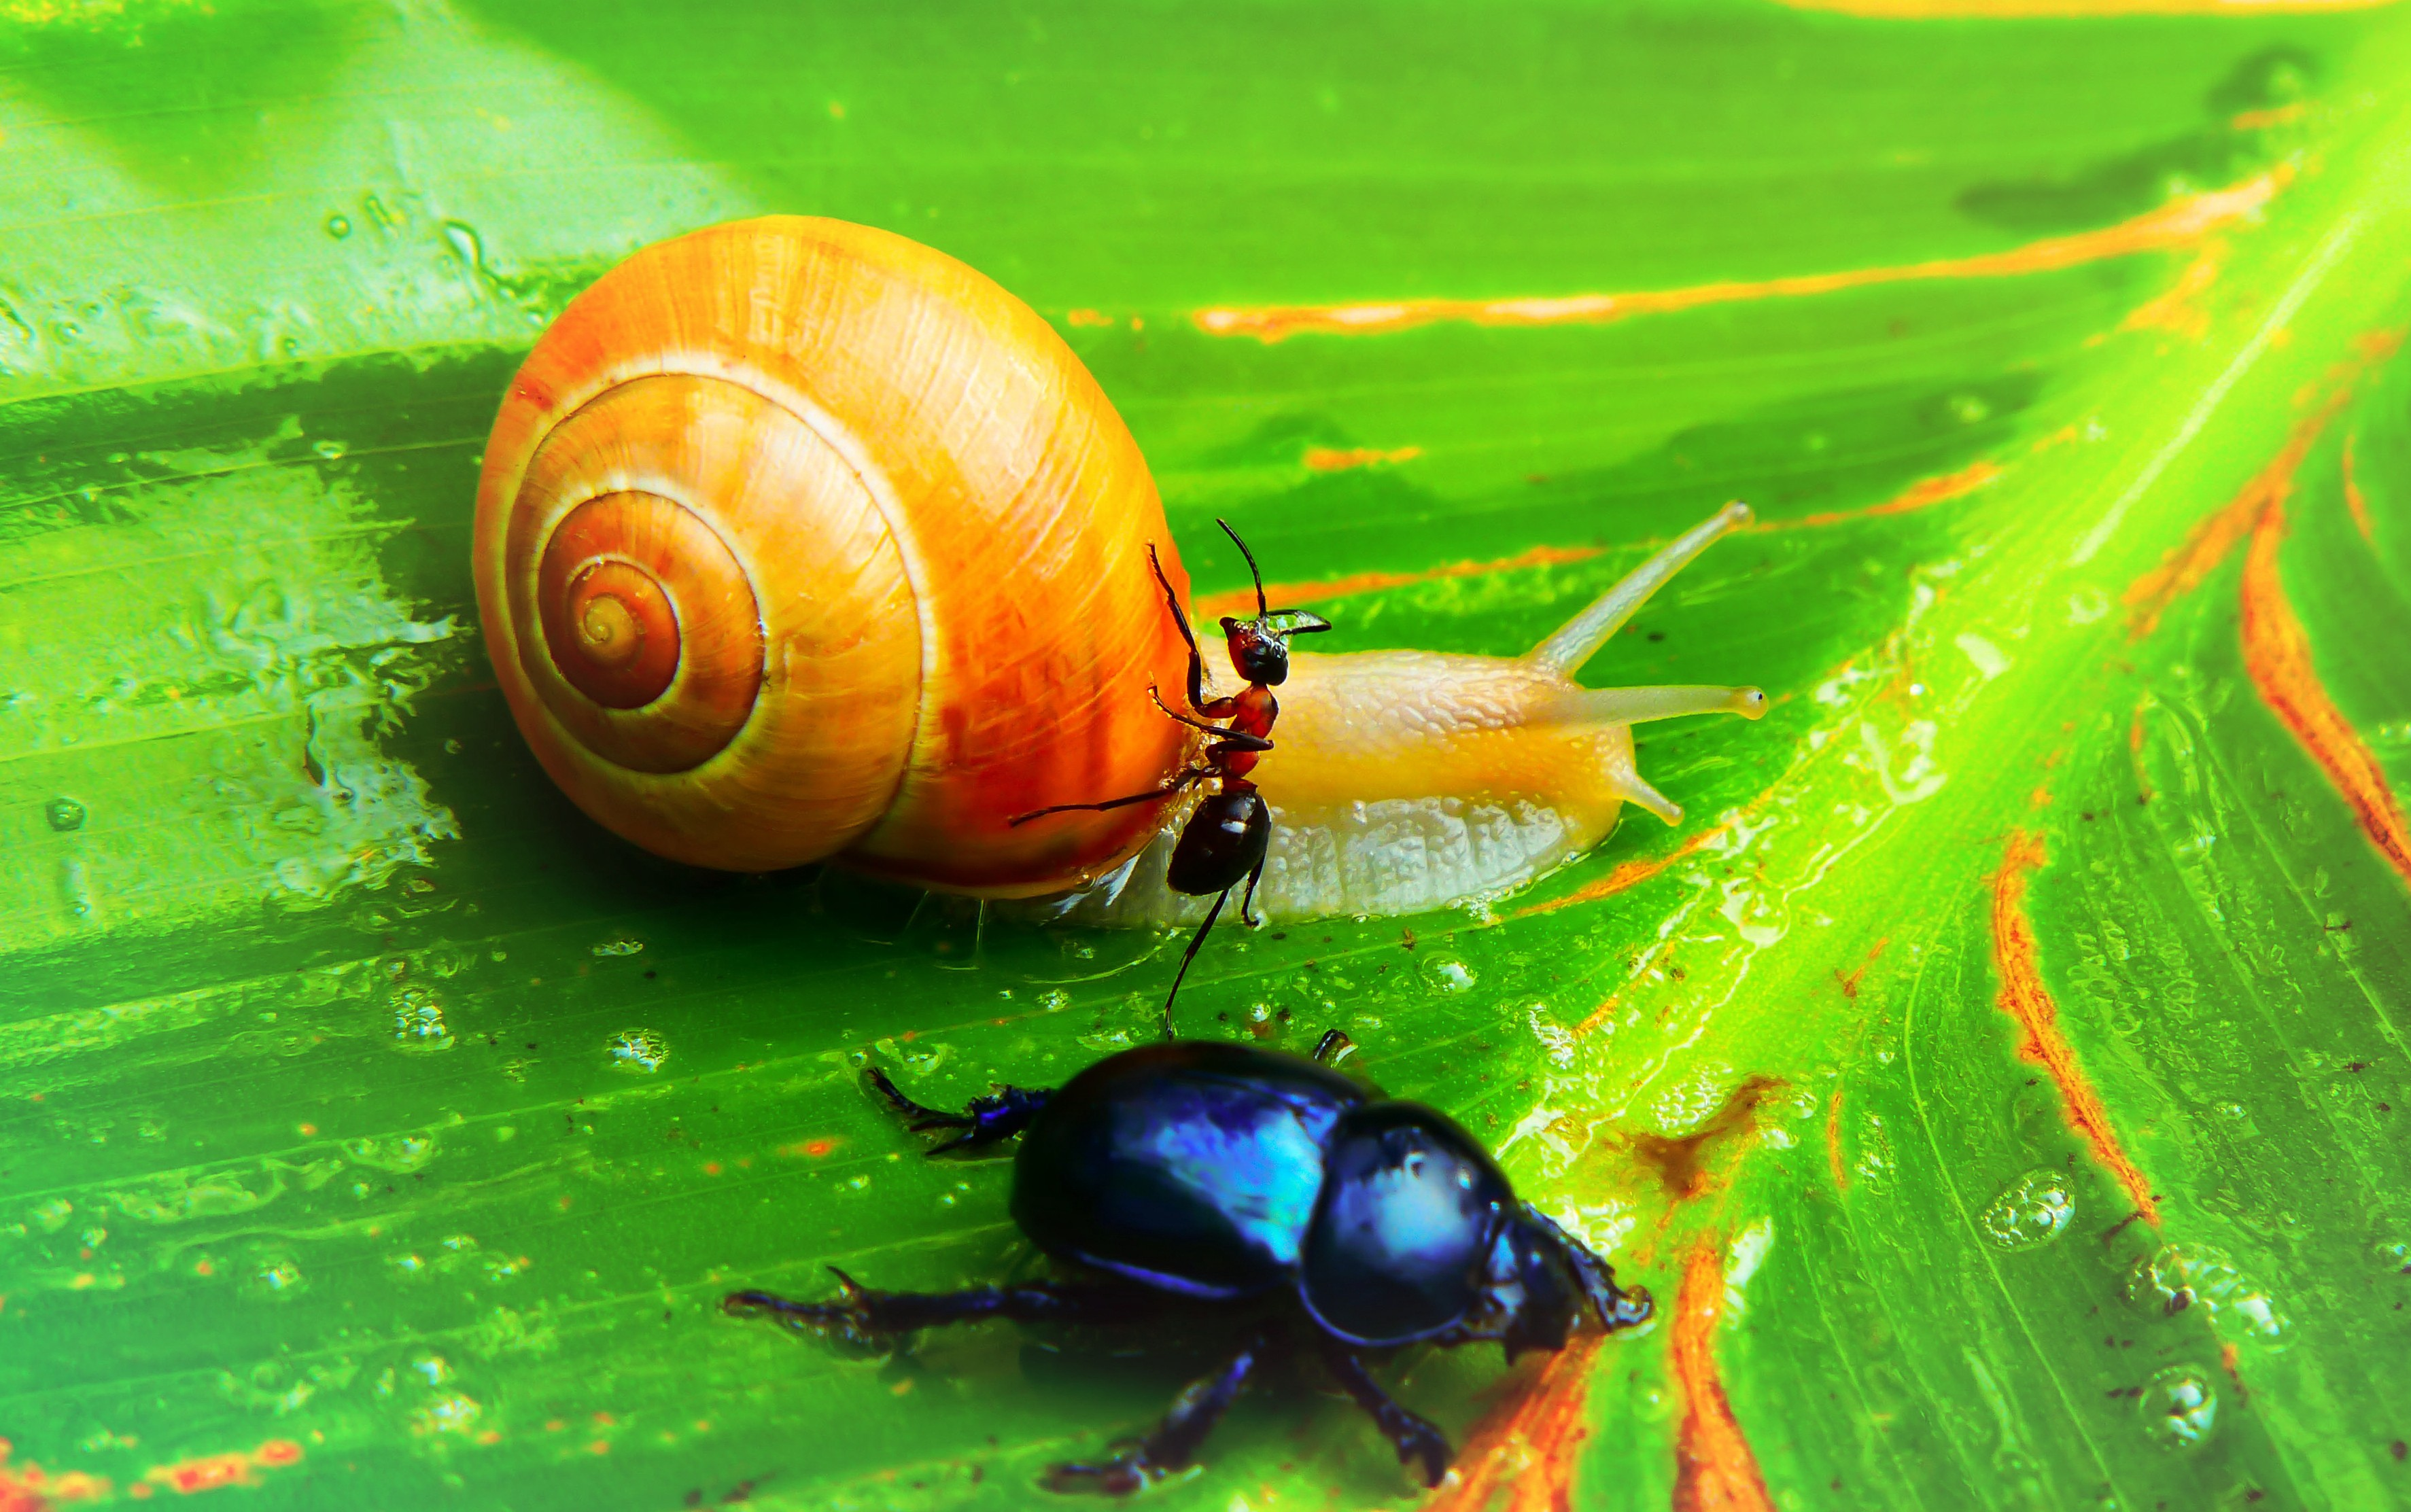 snail in a race with a beetle and an ant